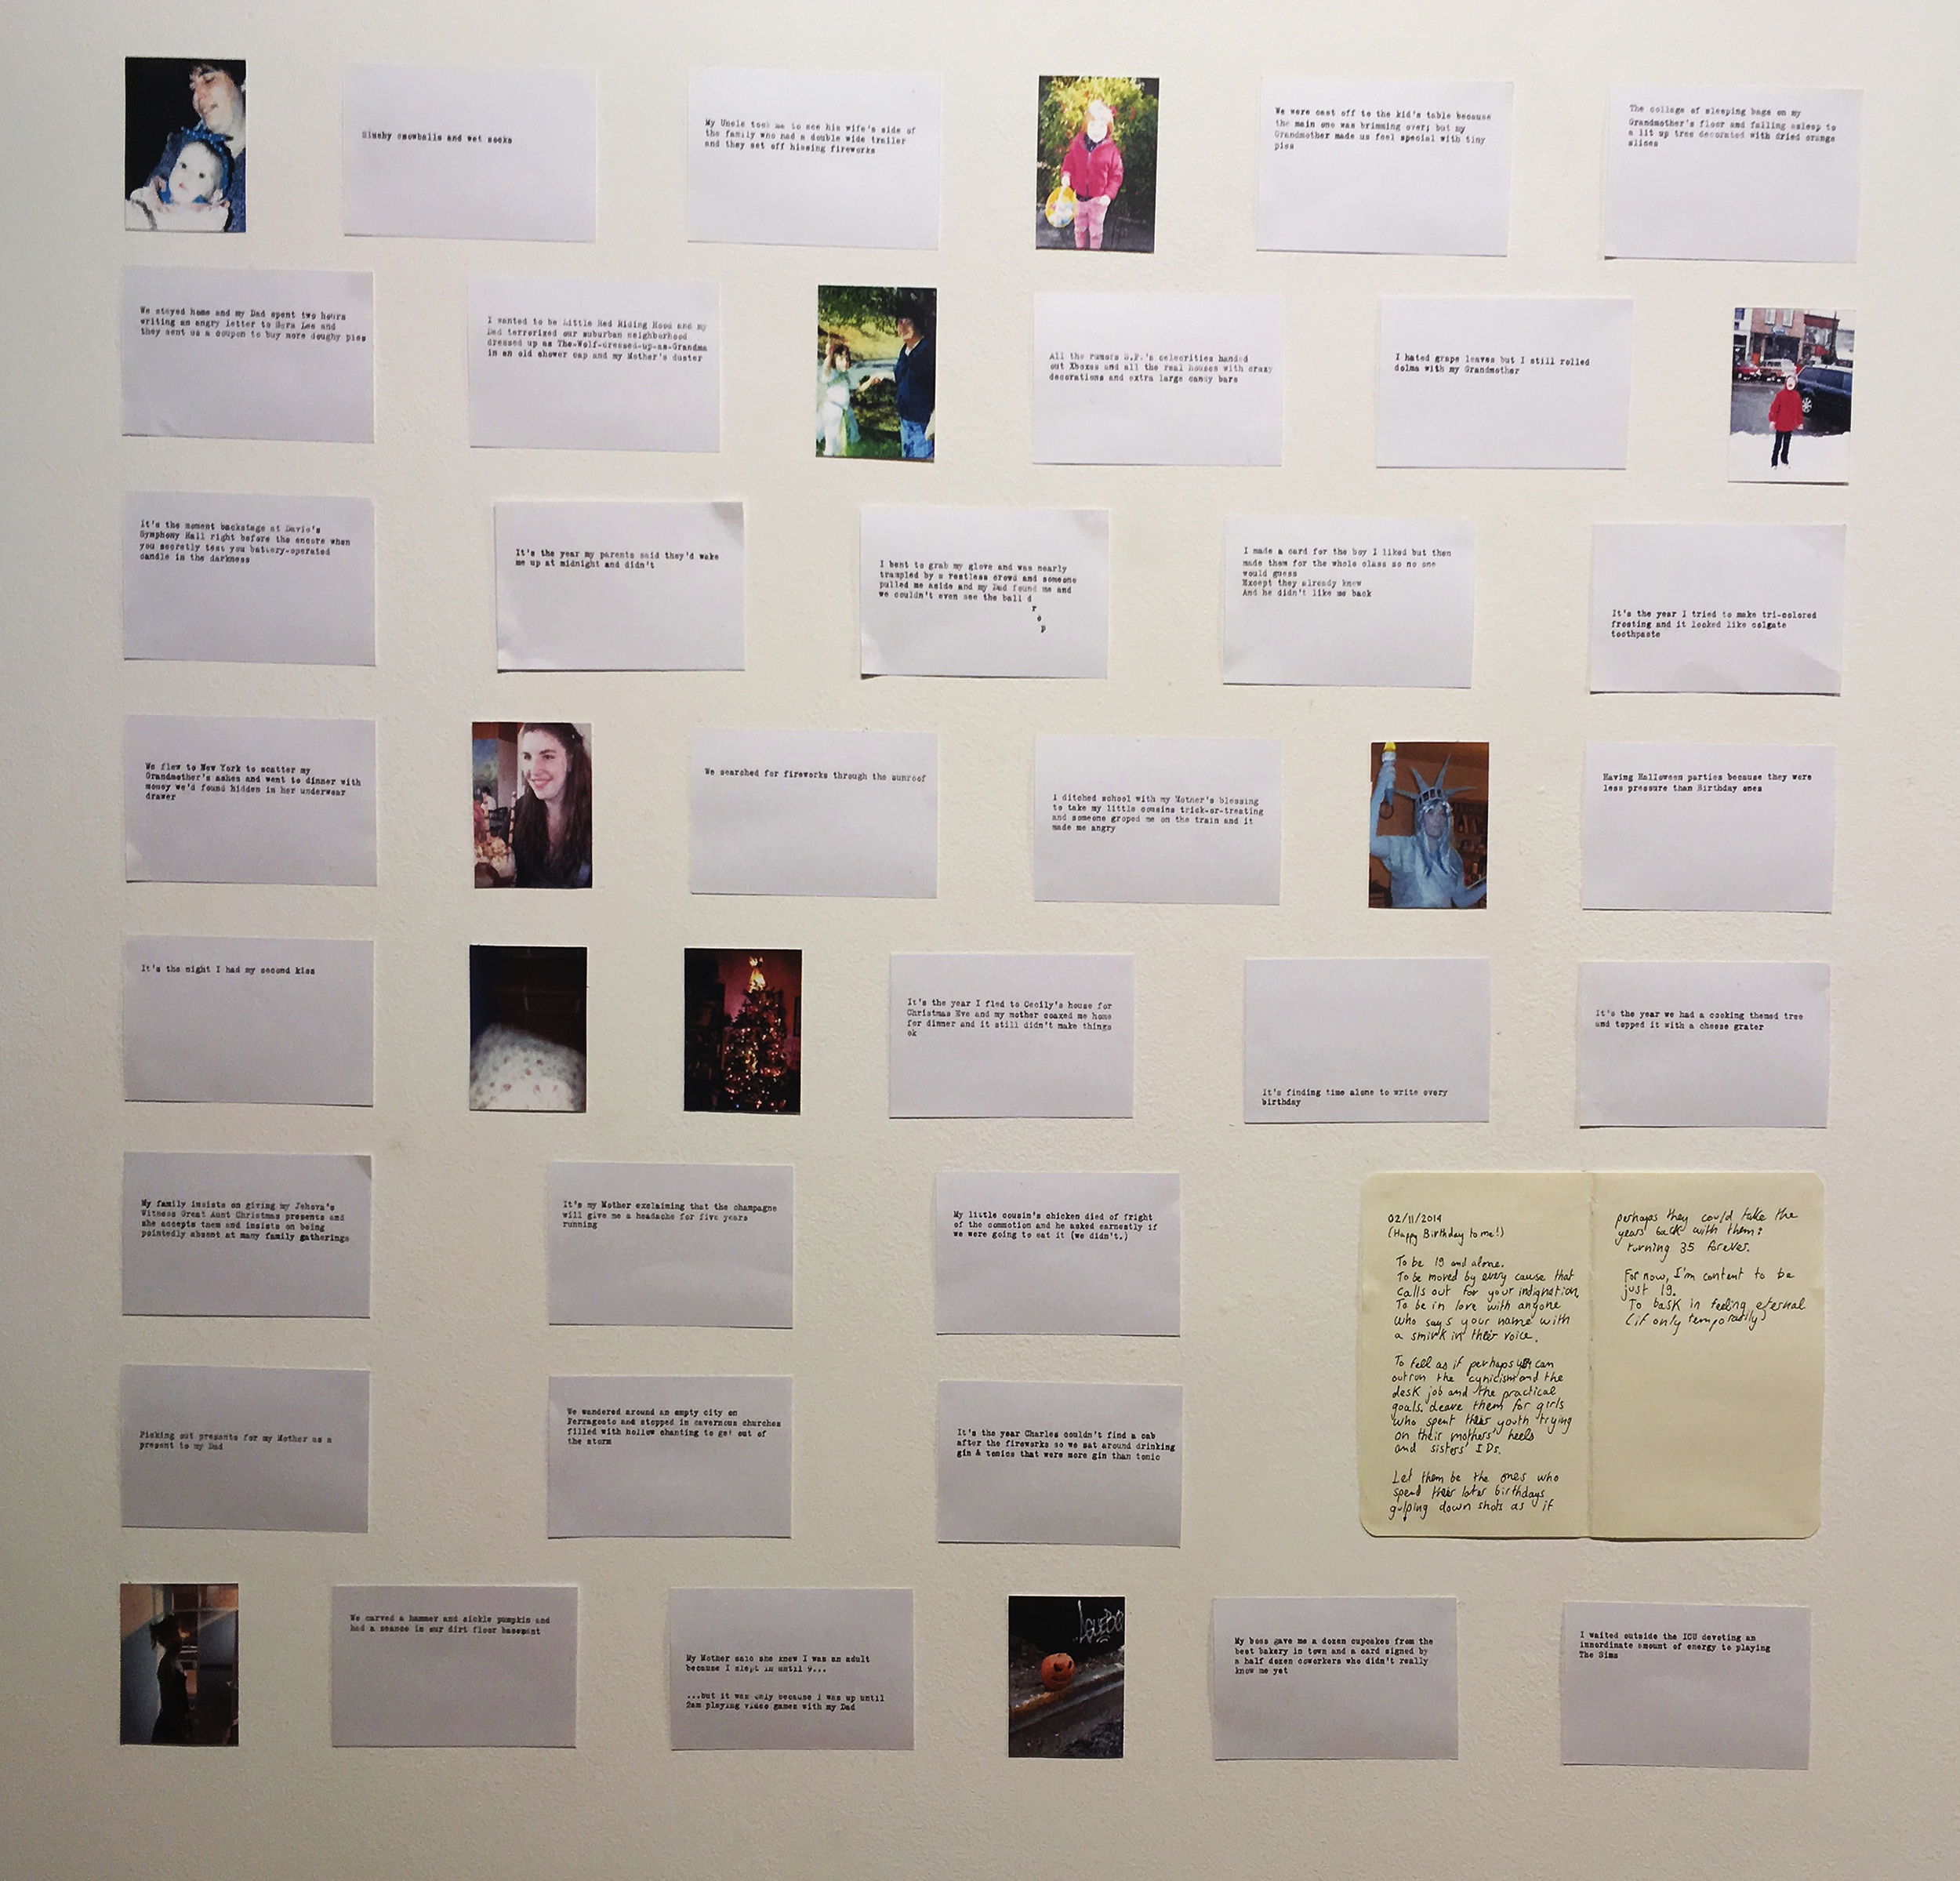 Many index cards were harmed in the making of this project